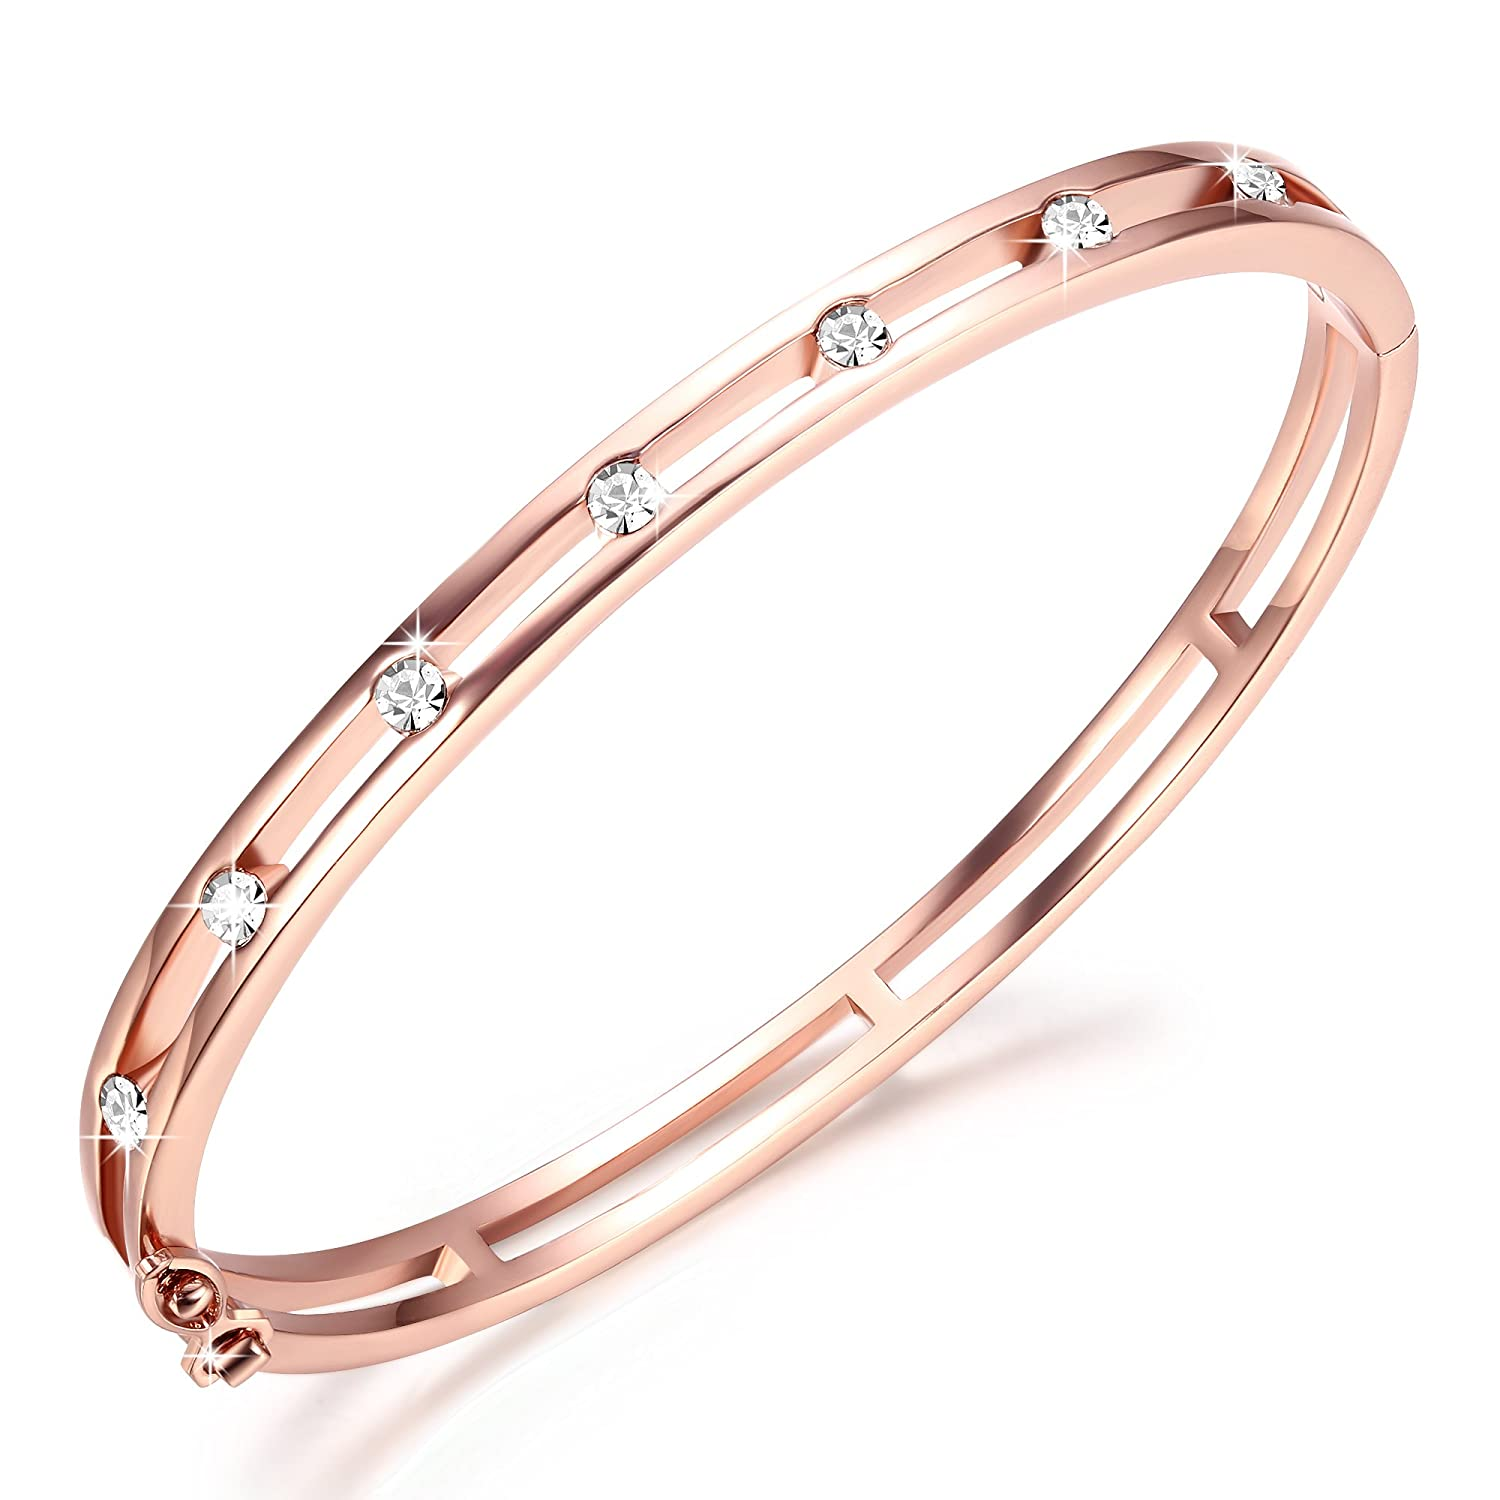 64aa868db Amazon.com: GEORGE · SMITH Women Rose Gold Unleash Charms Crystal Bangle  Bracelet Original Design for Mom Wife-Including a Luxury Jewelry Gift Box:  Jewelry